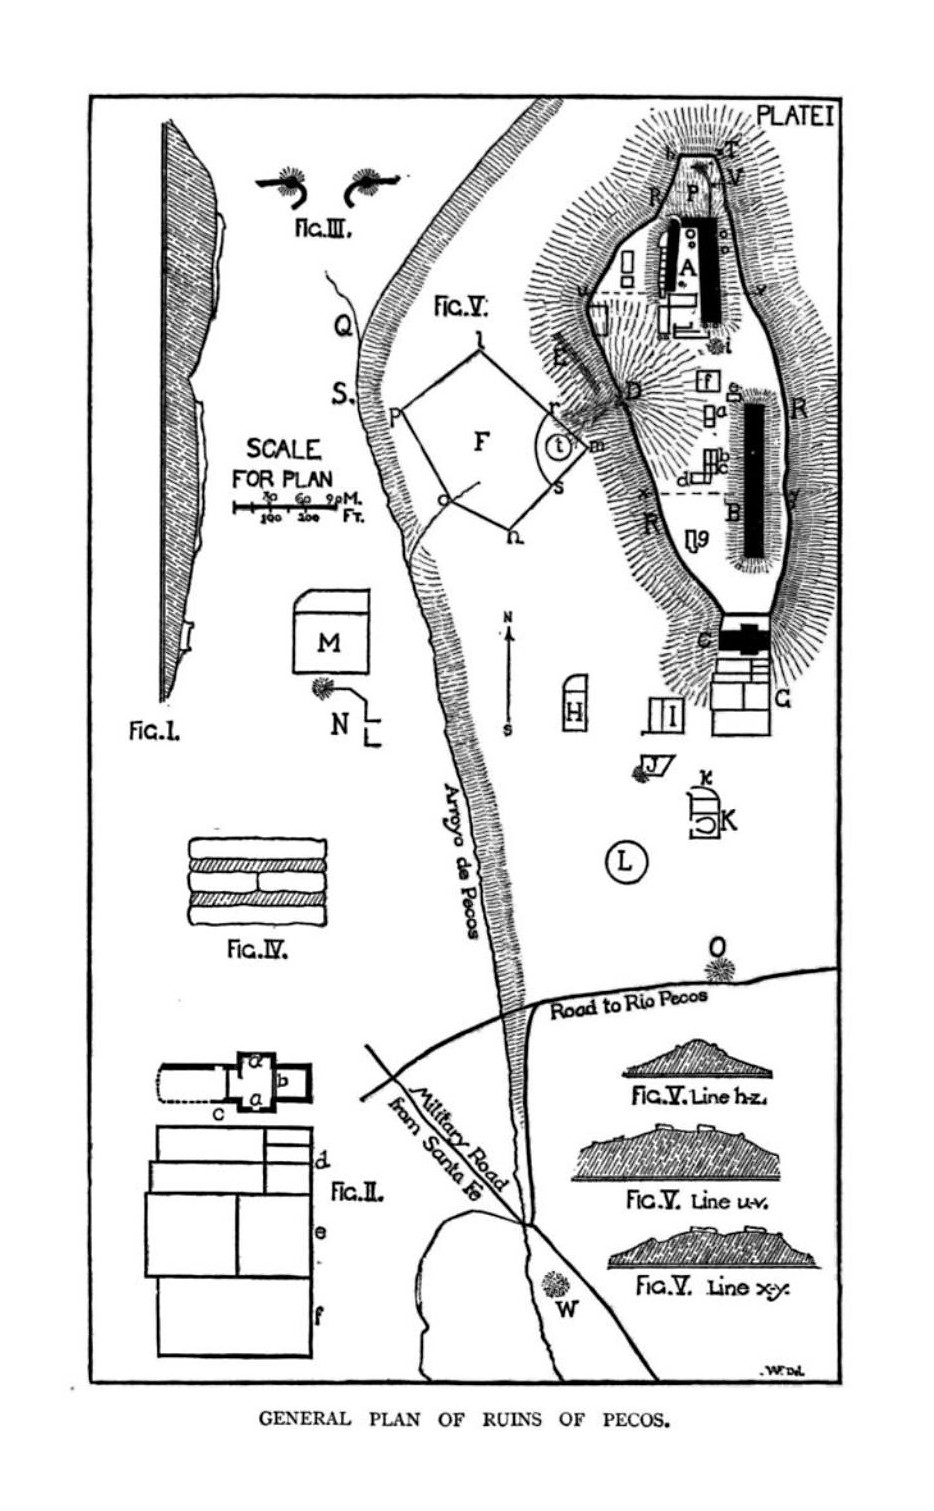 The project gutenberg ebook of historical introduction to studies plate i general plan of ruins of pecos fandeluxe Images